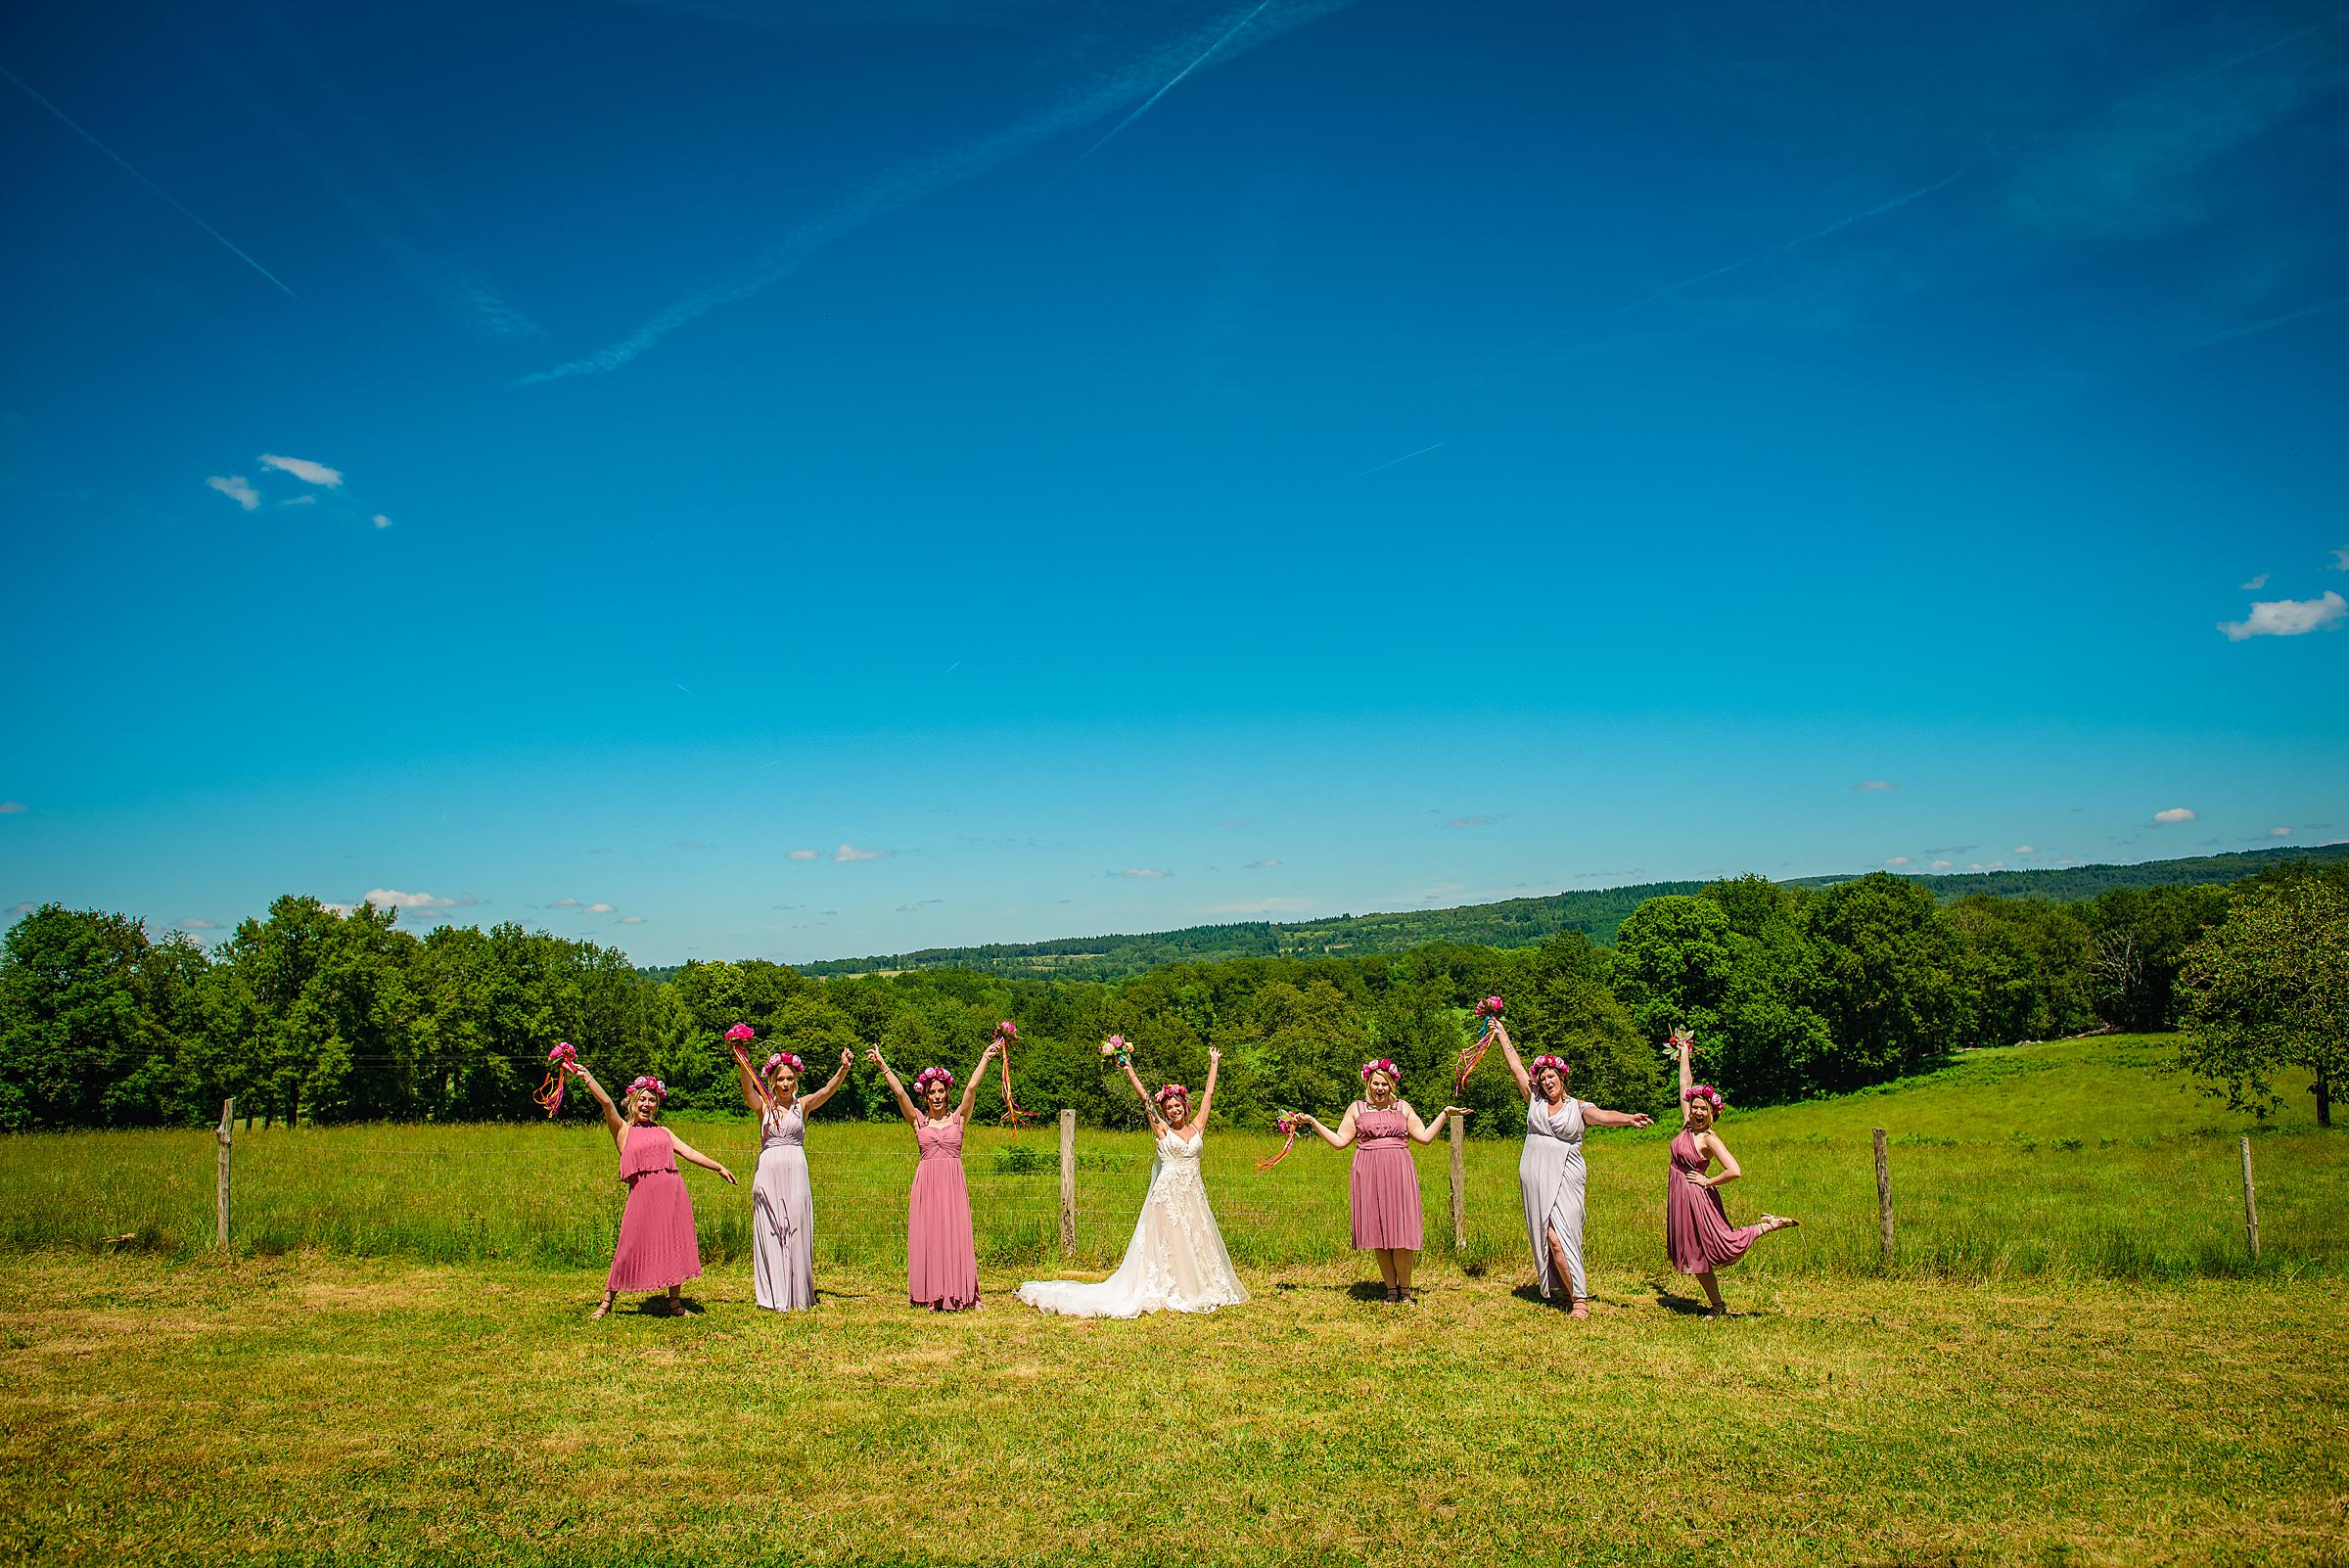 Back Garden Festival Wedding in France - Bridesmaids